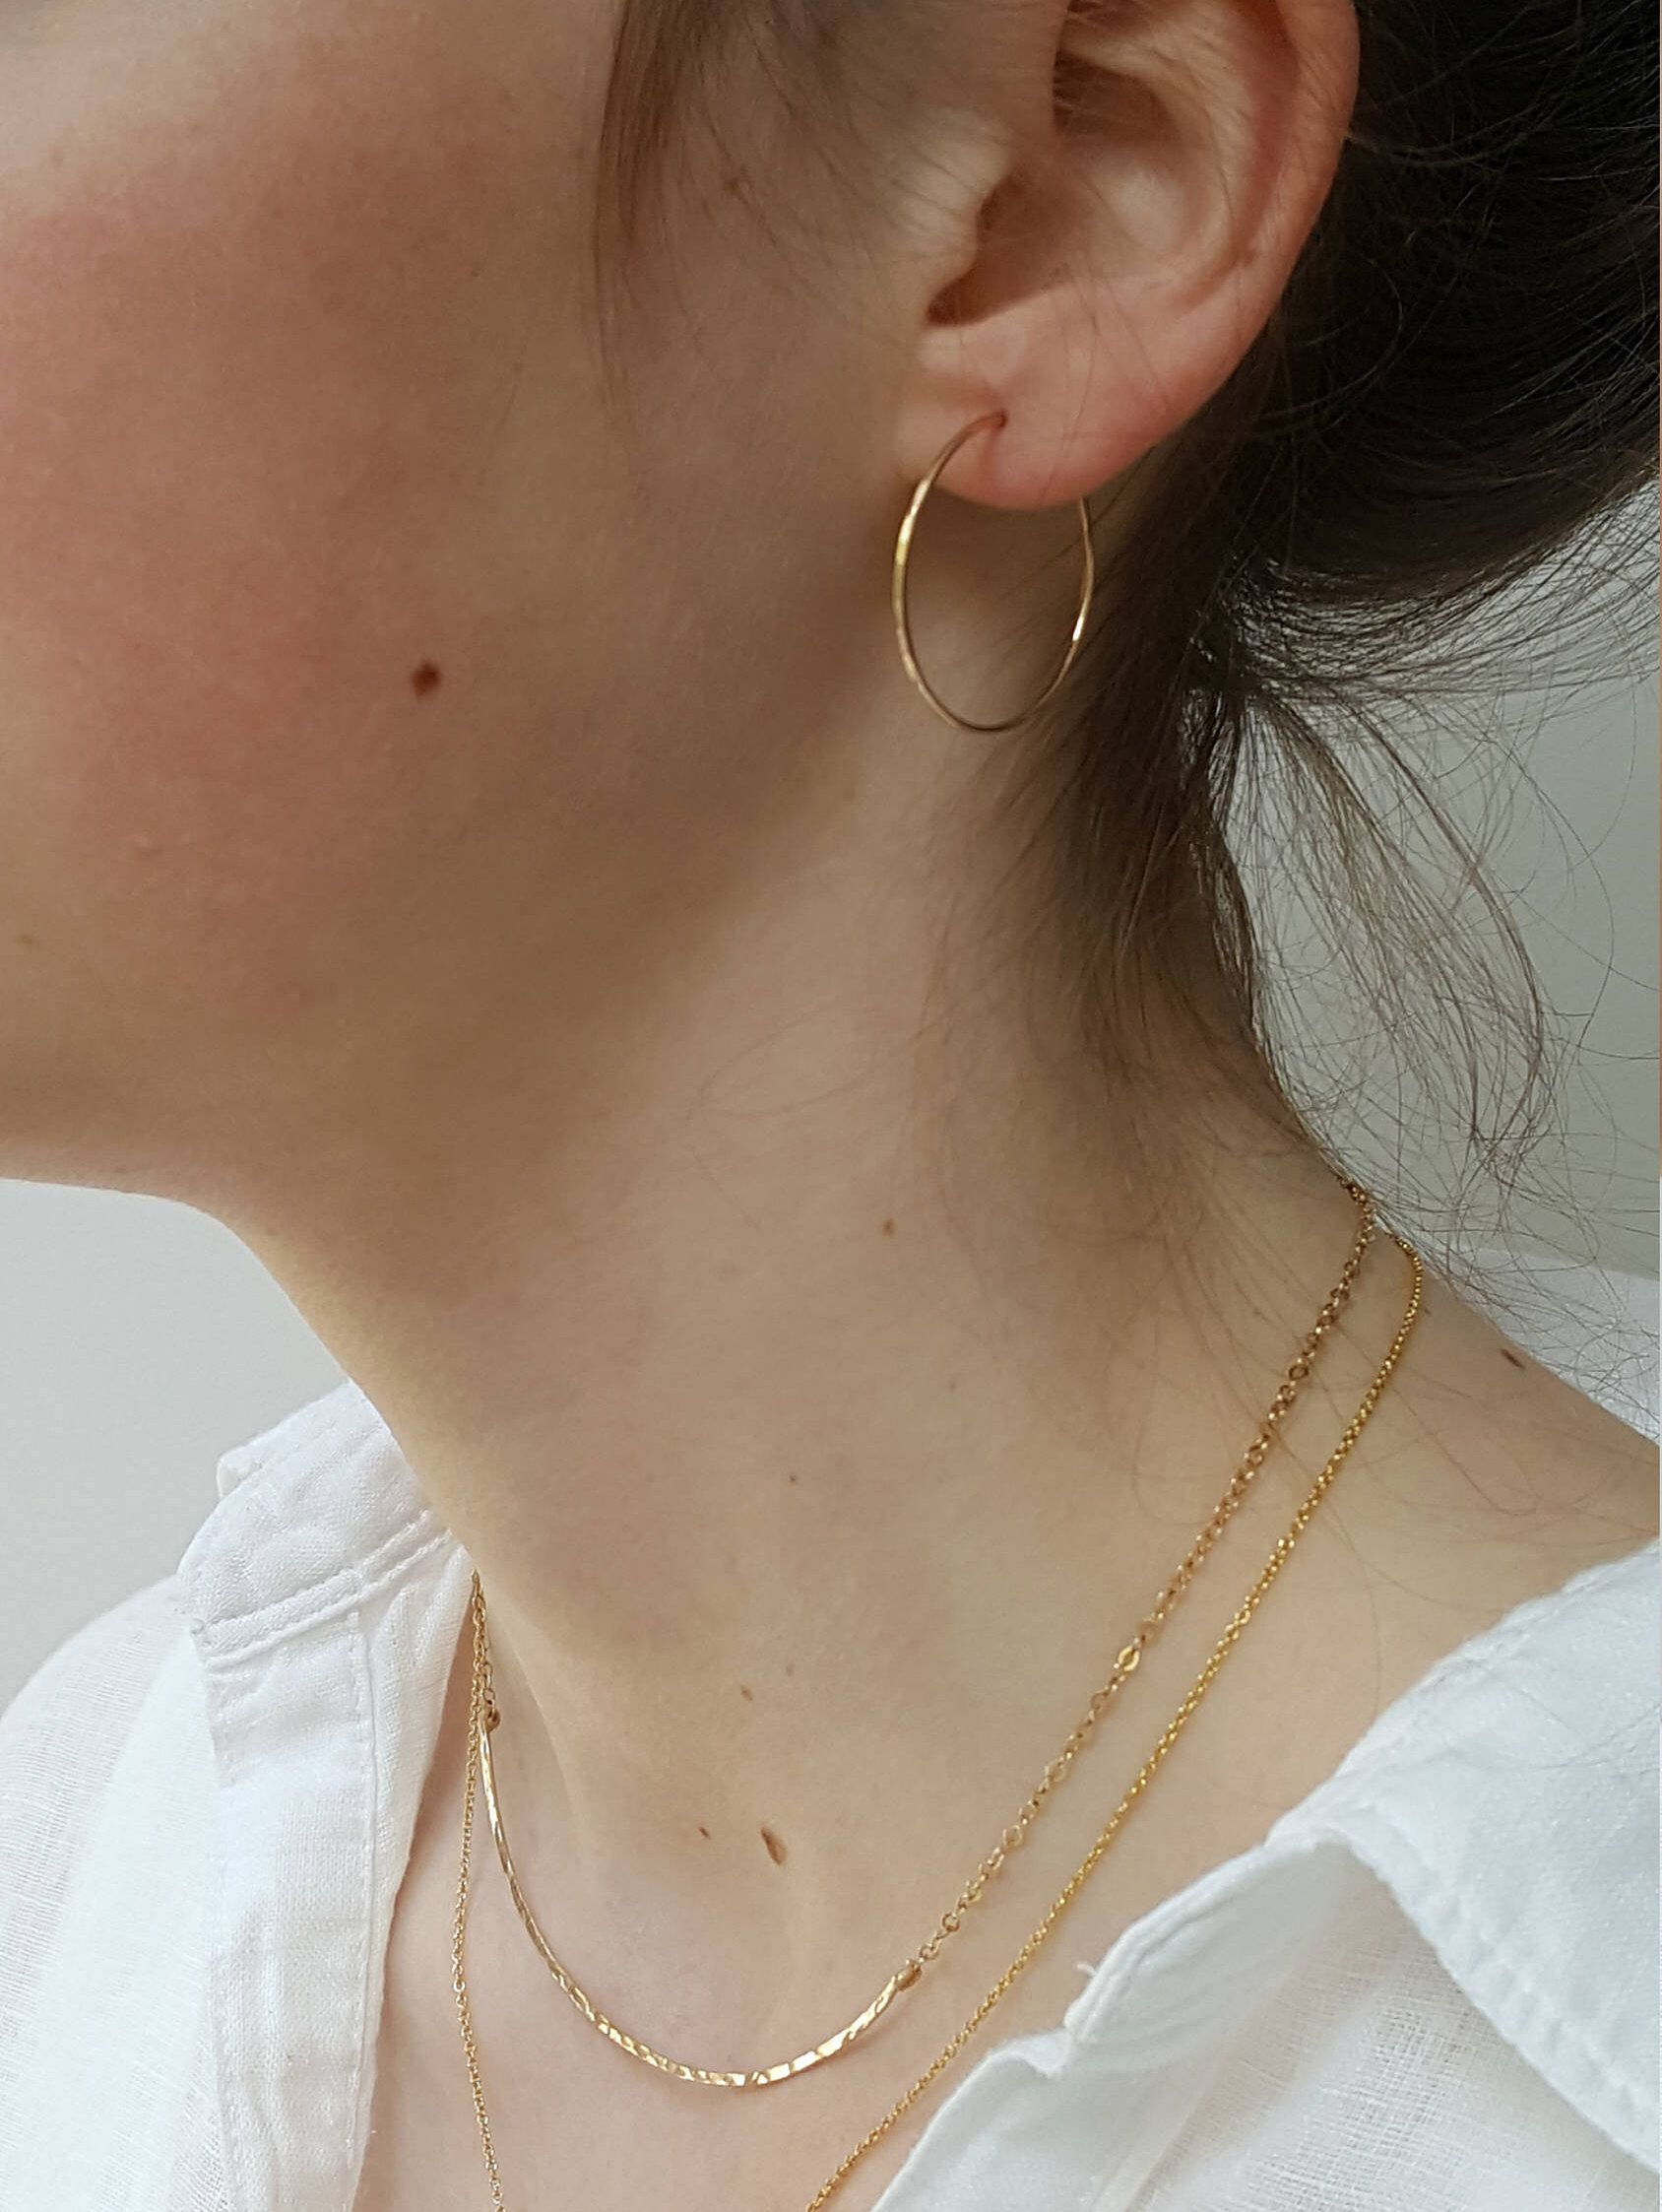 Gold Hoop Earrings Small 1 5 Inch Hammered Thin